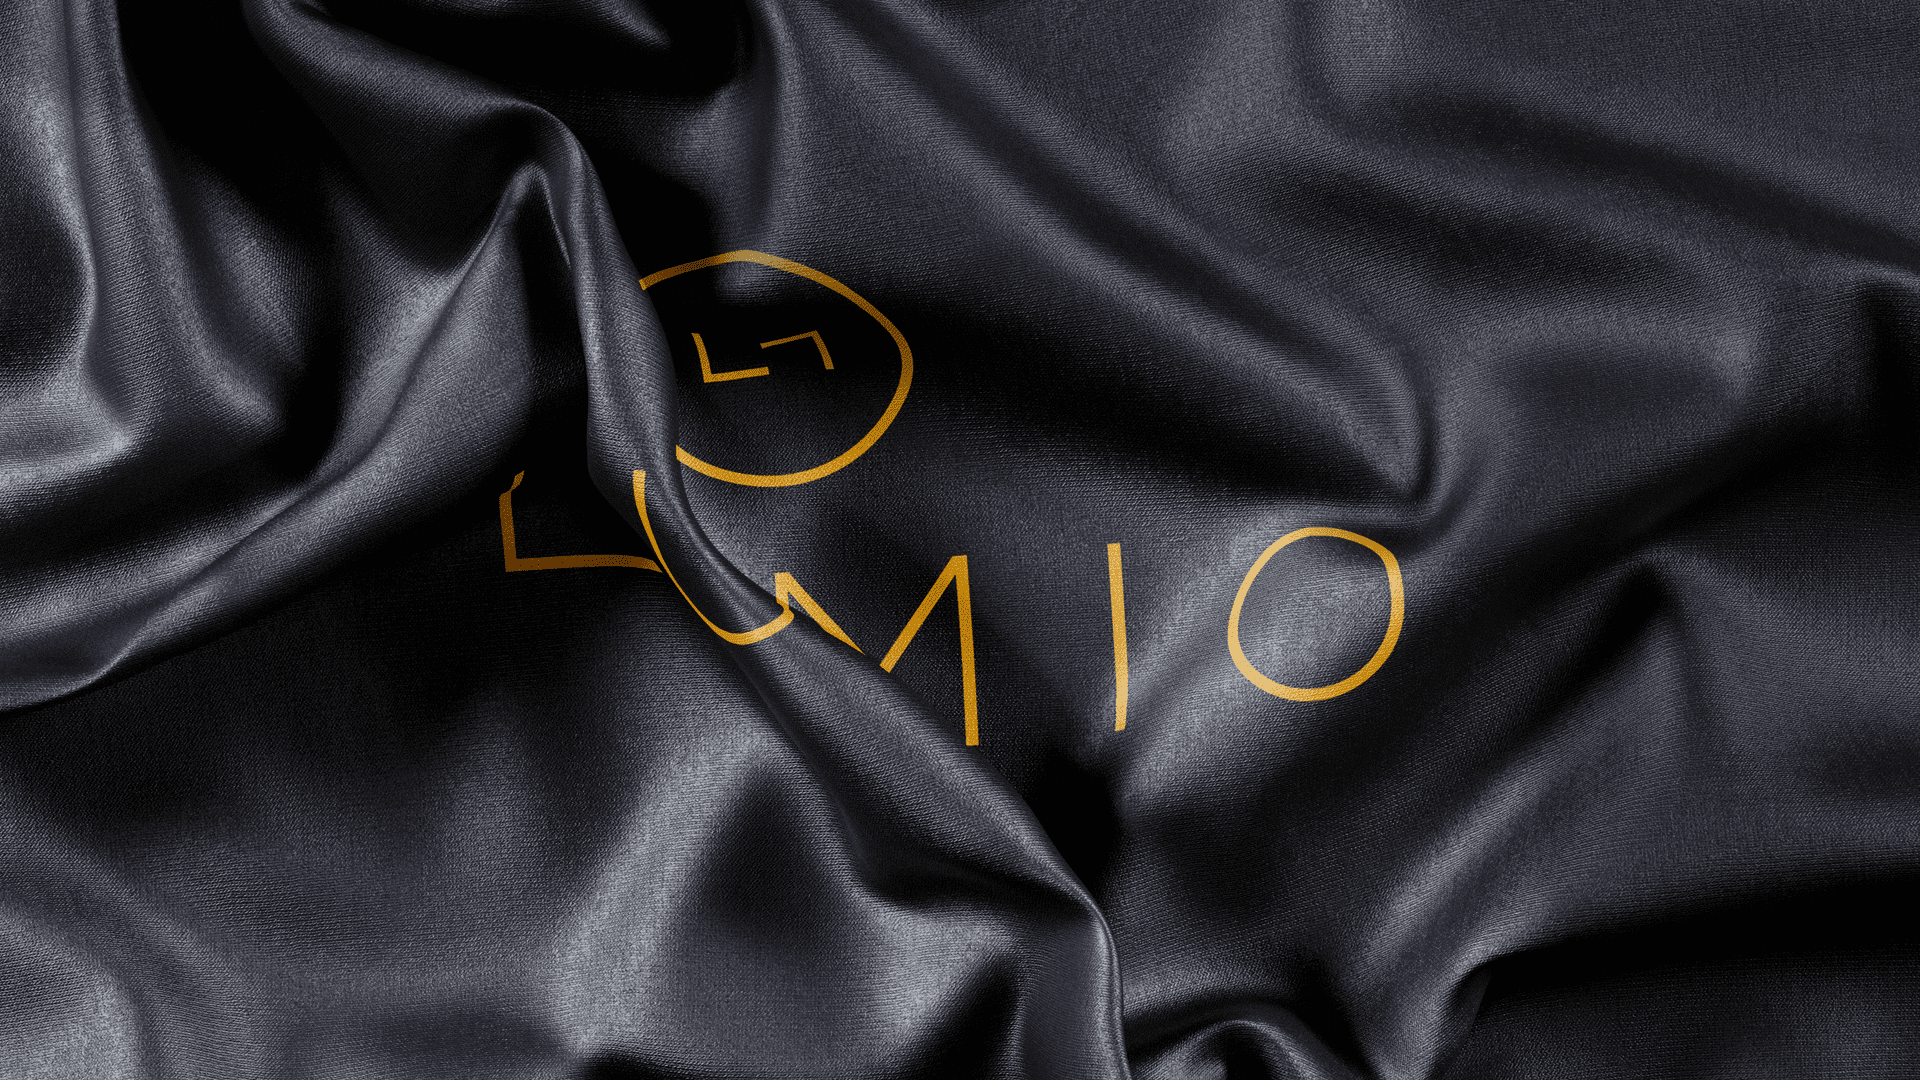 lumio wrinkled cloth with gold logo applied